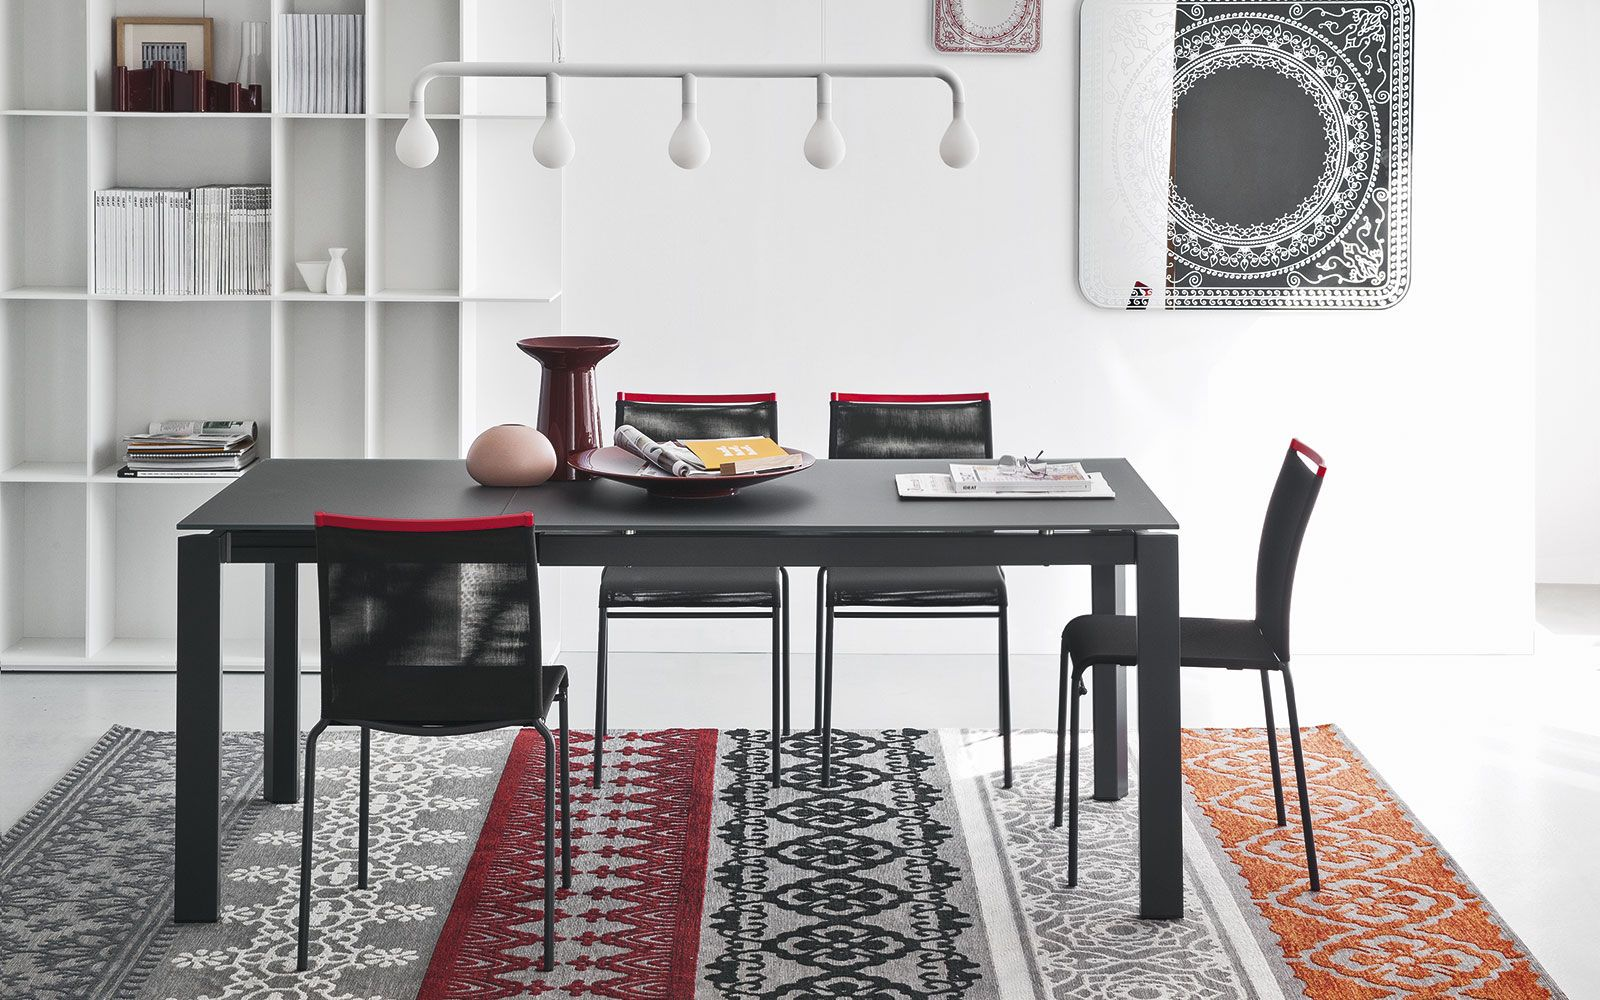 Ducas Table Legs Remain At The Corners So Guests Can Be Seated In Maximum Comfort Extension System Involves Pulling Out Frame And Rotating